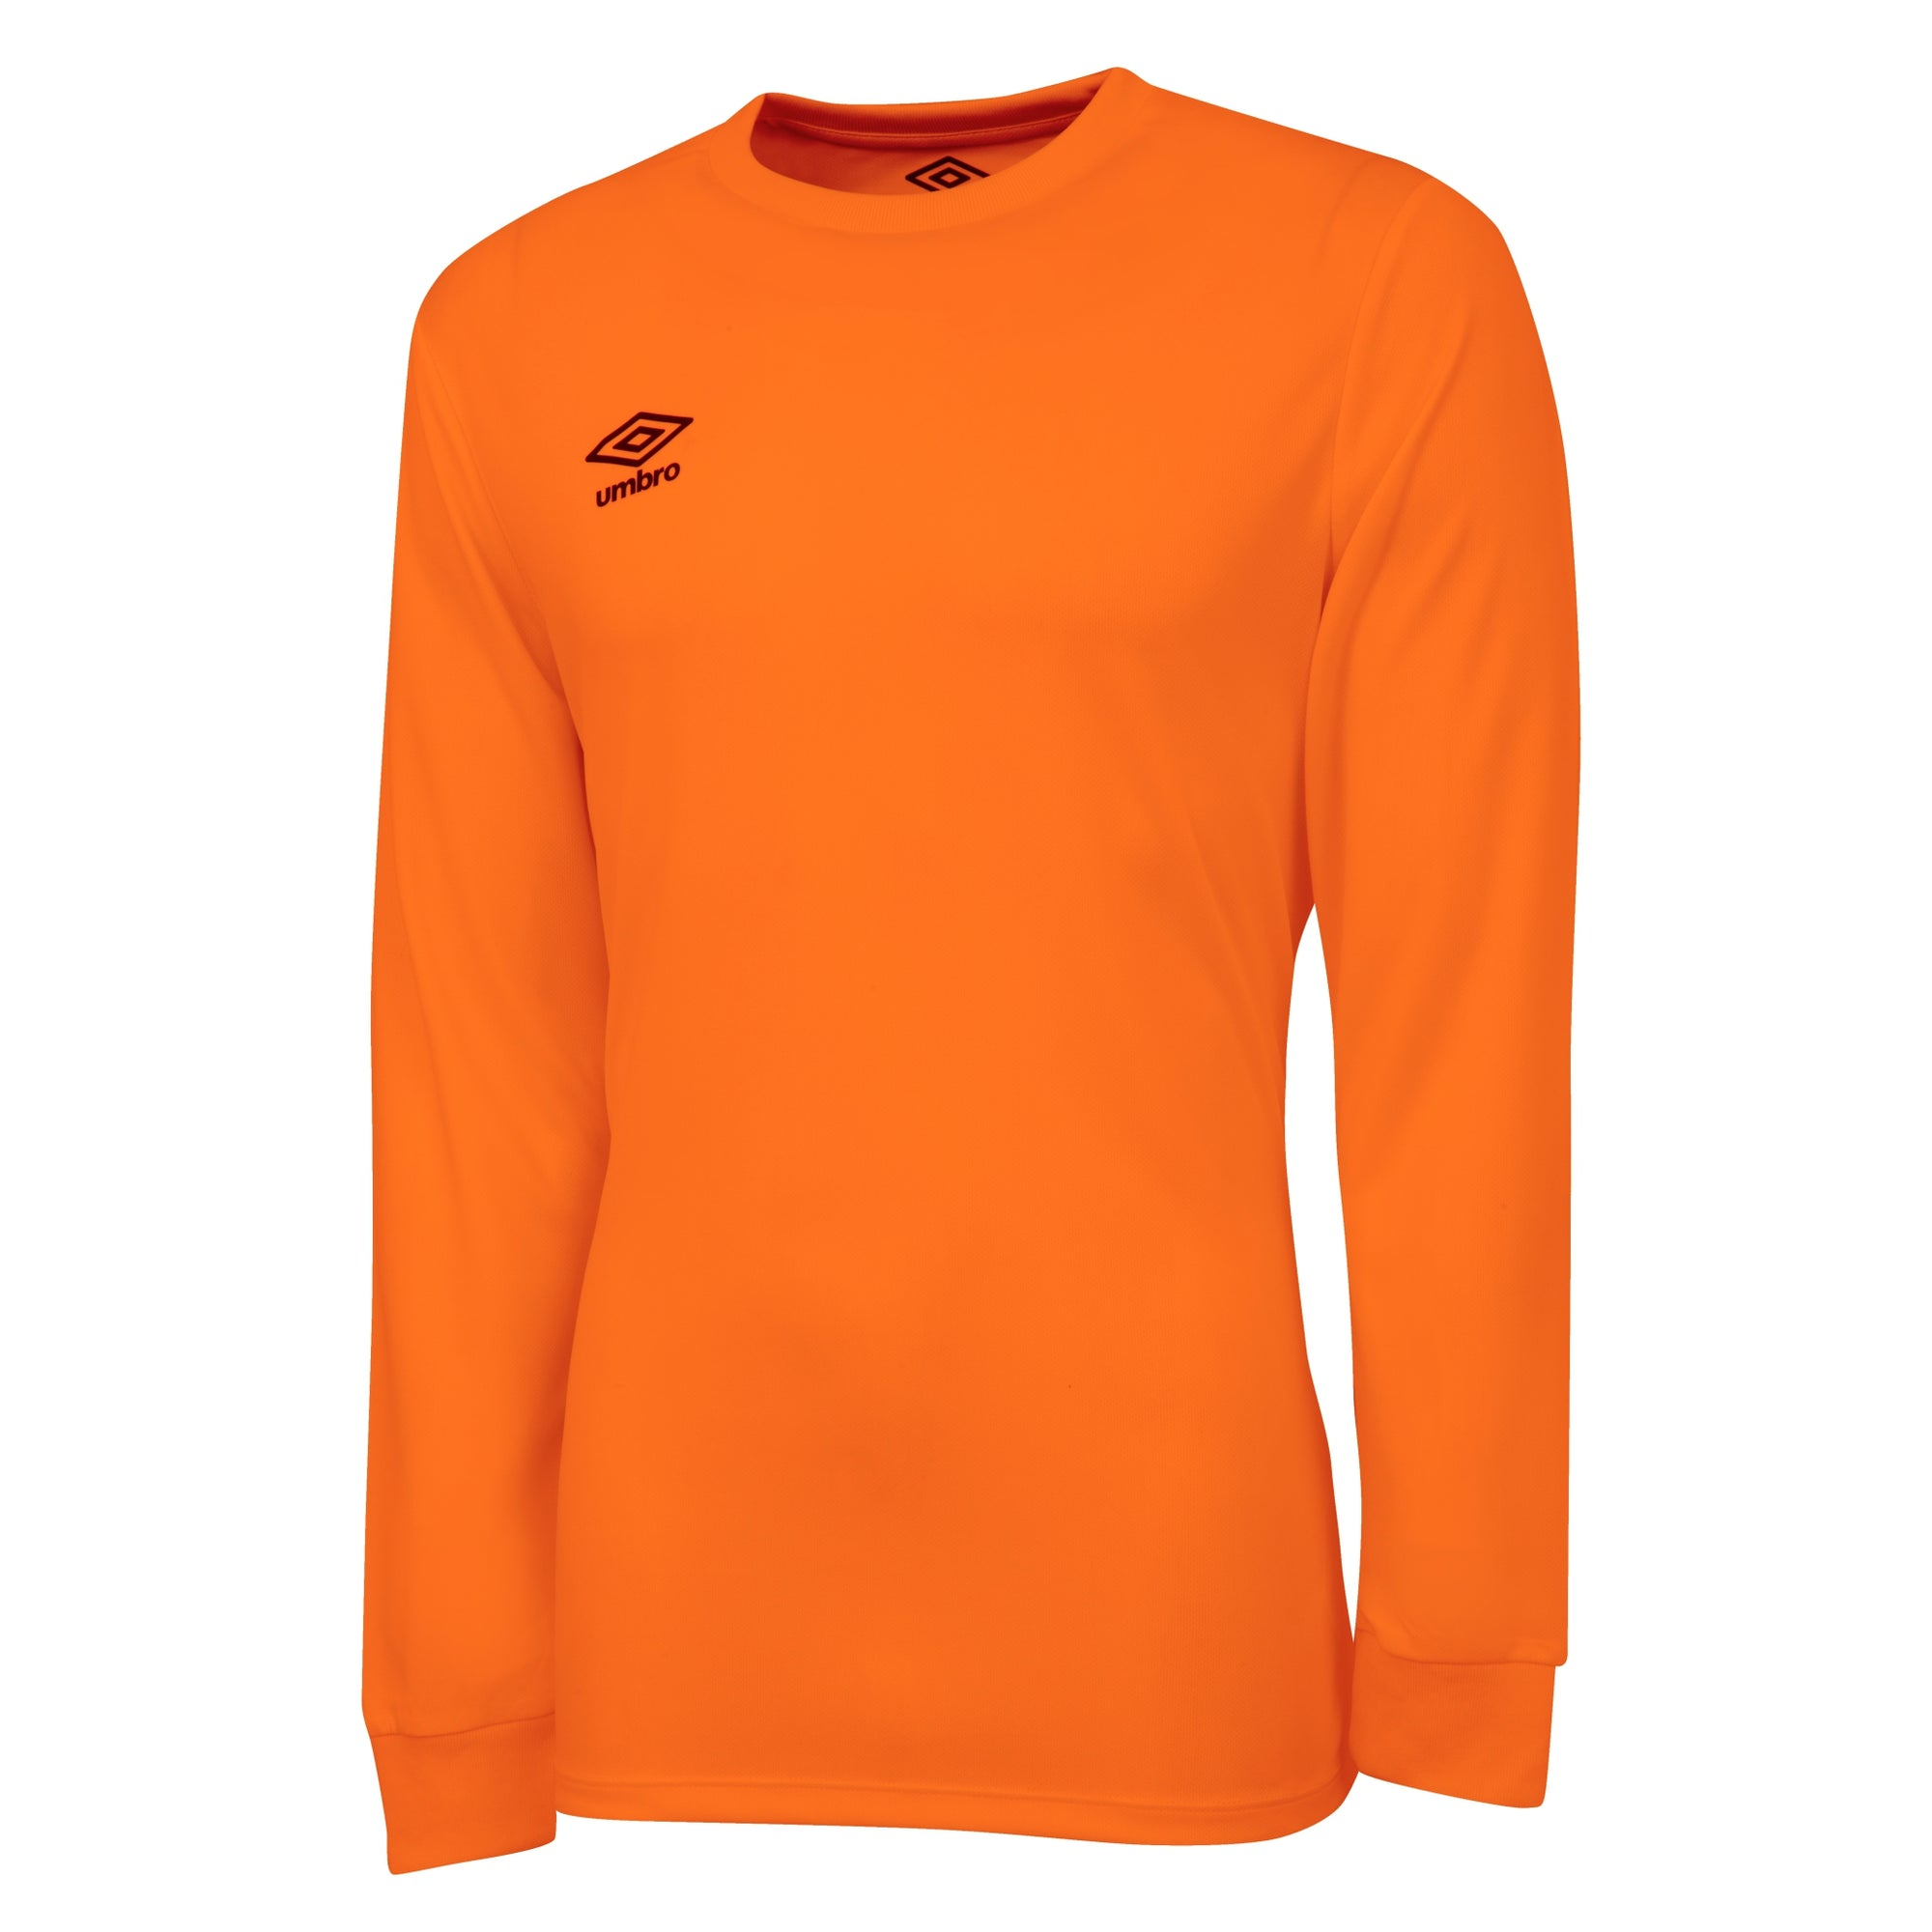 Umbro long sleeve club jersey in shocking orange with black printed Umbro logo